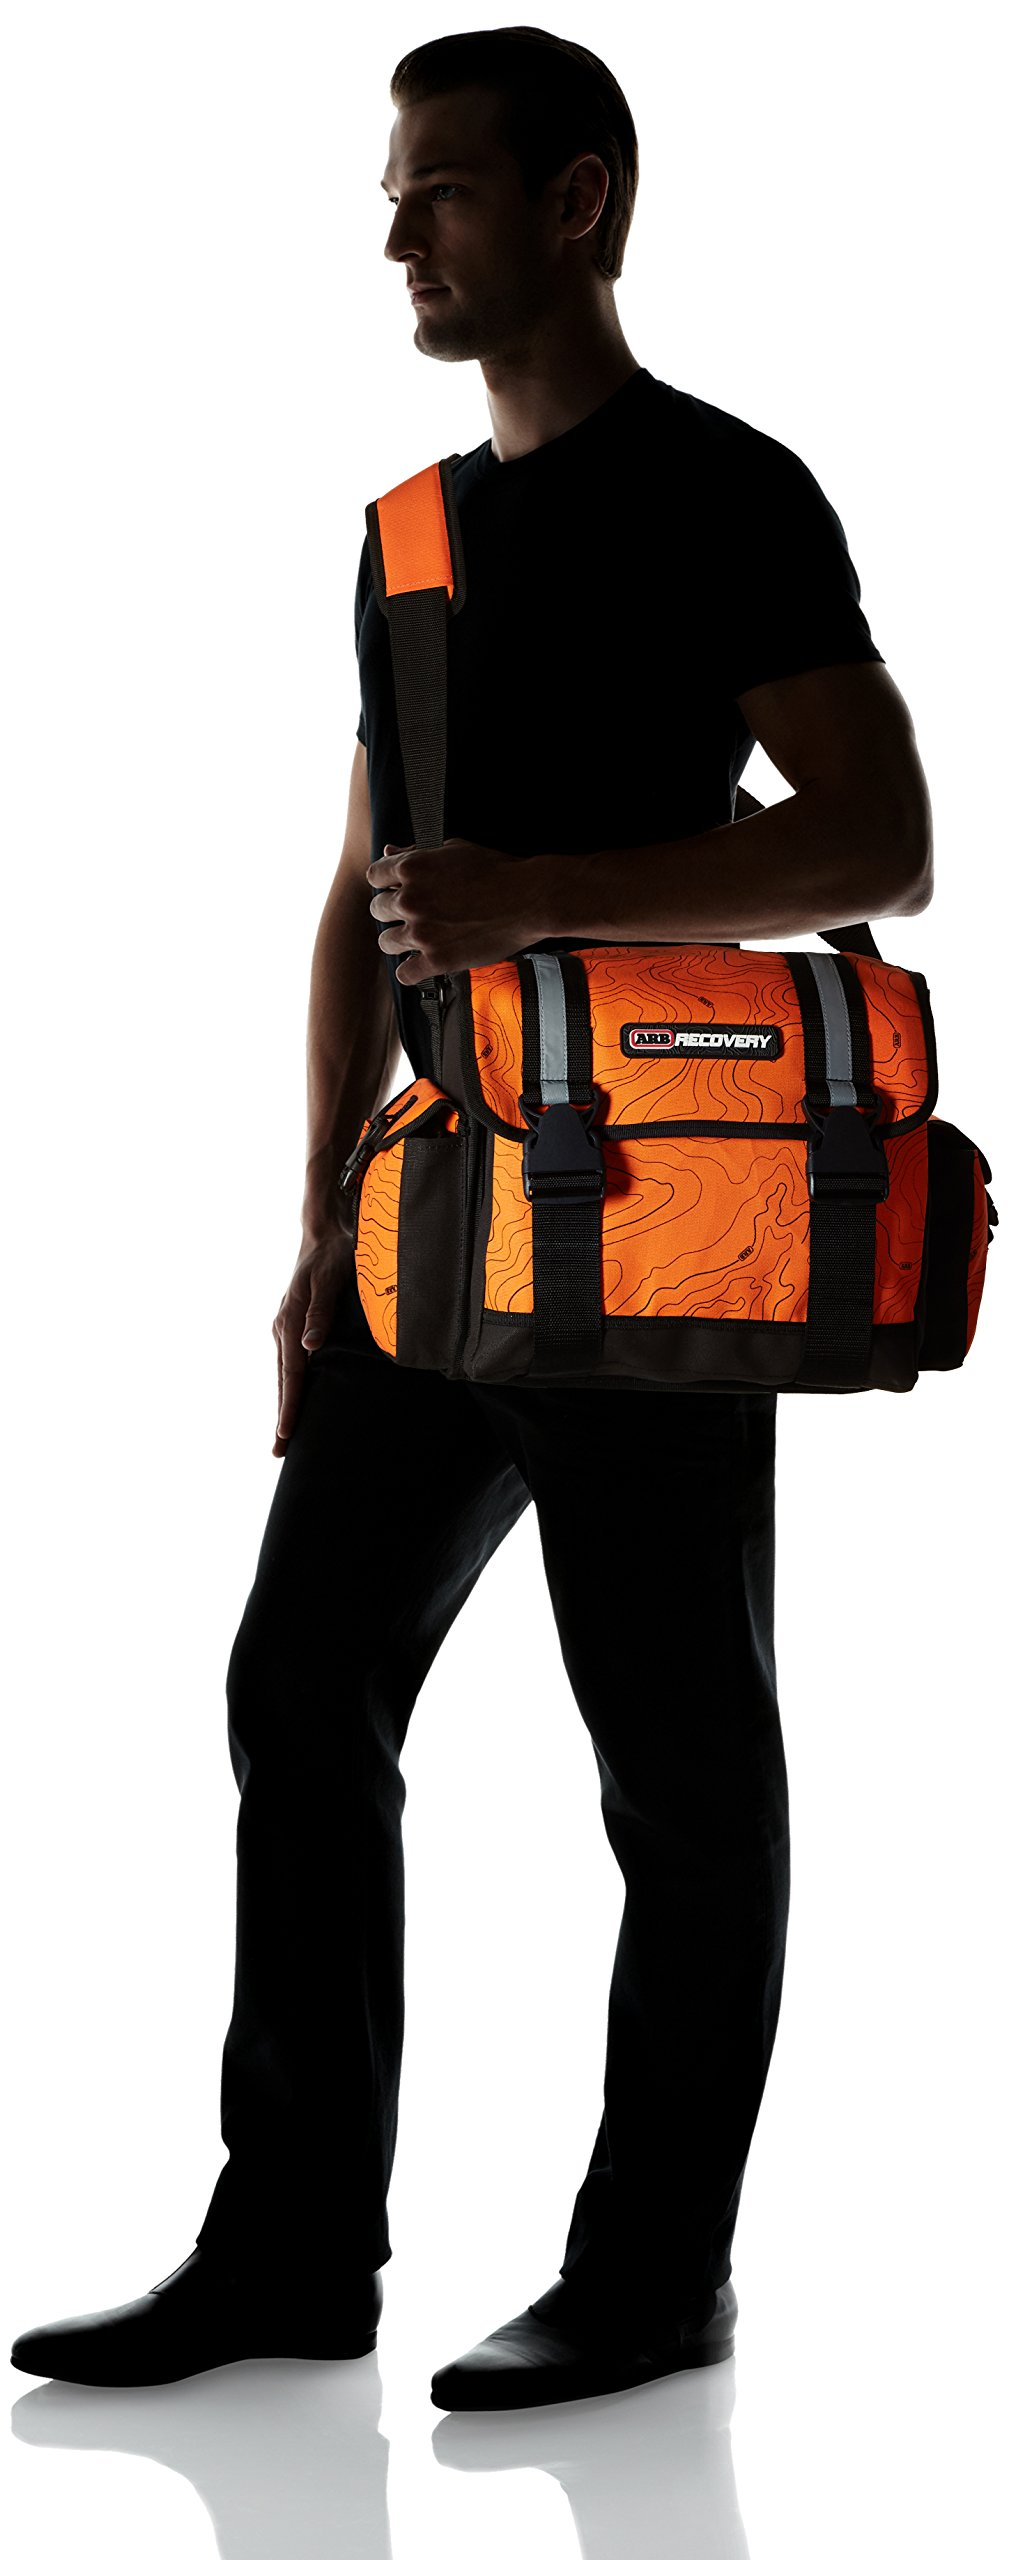 ARB ARB501 Orange Large Recovery Bag by ARB (Image #6)